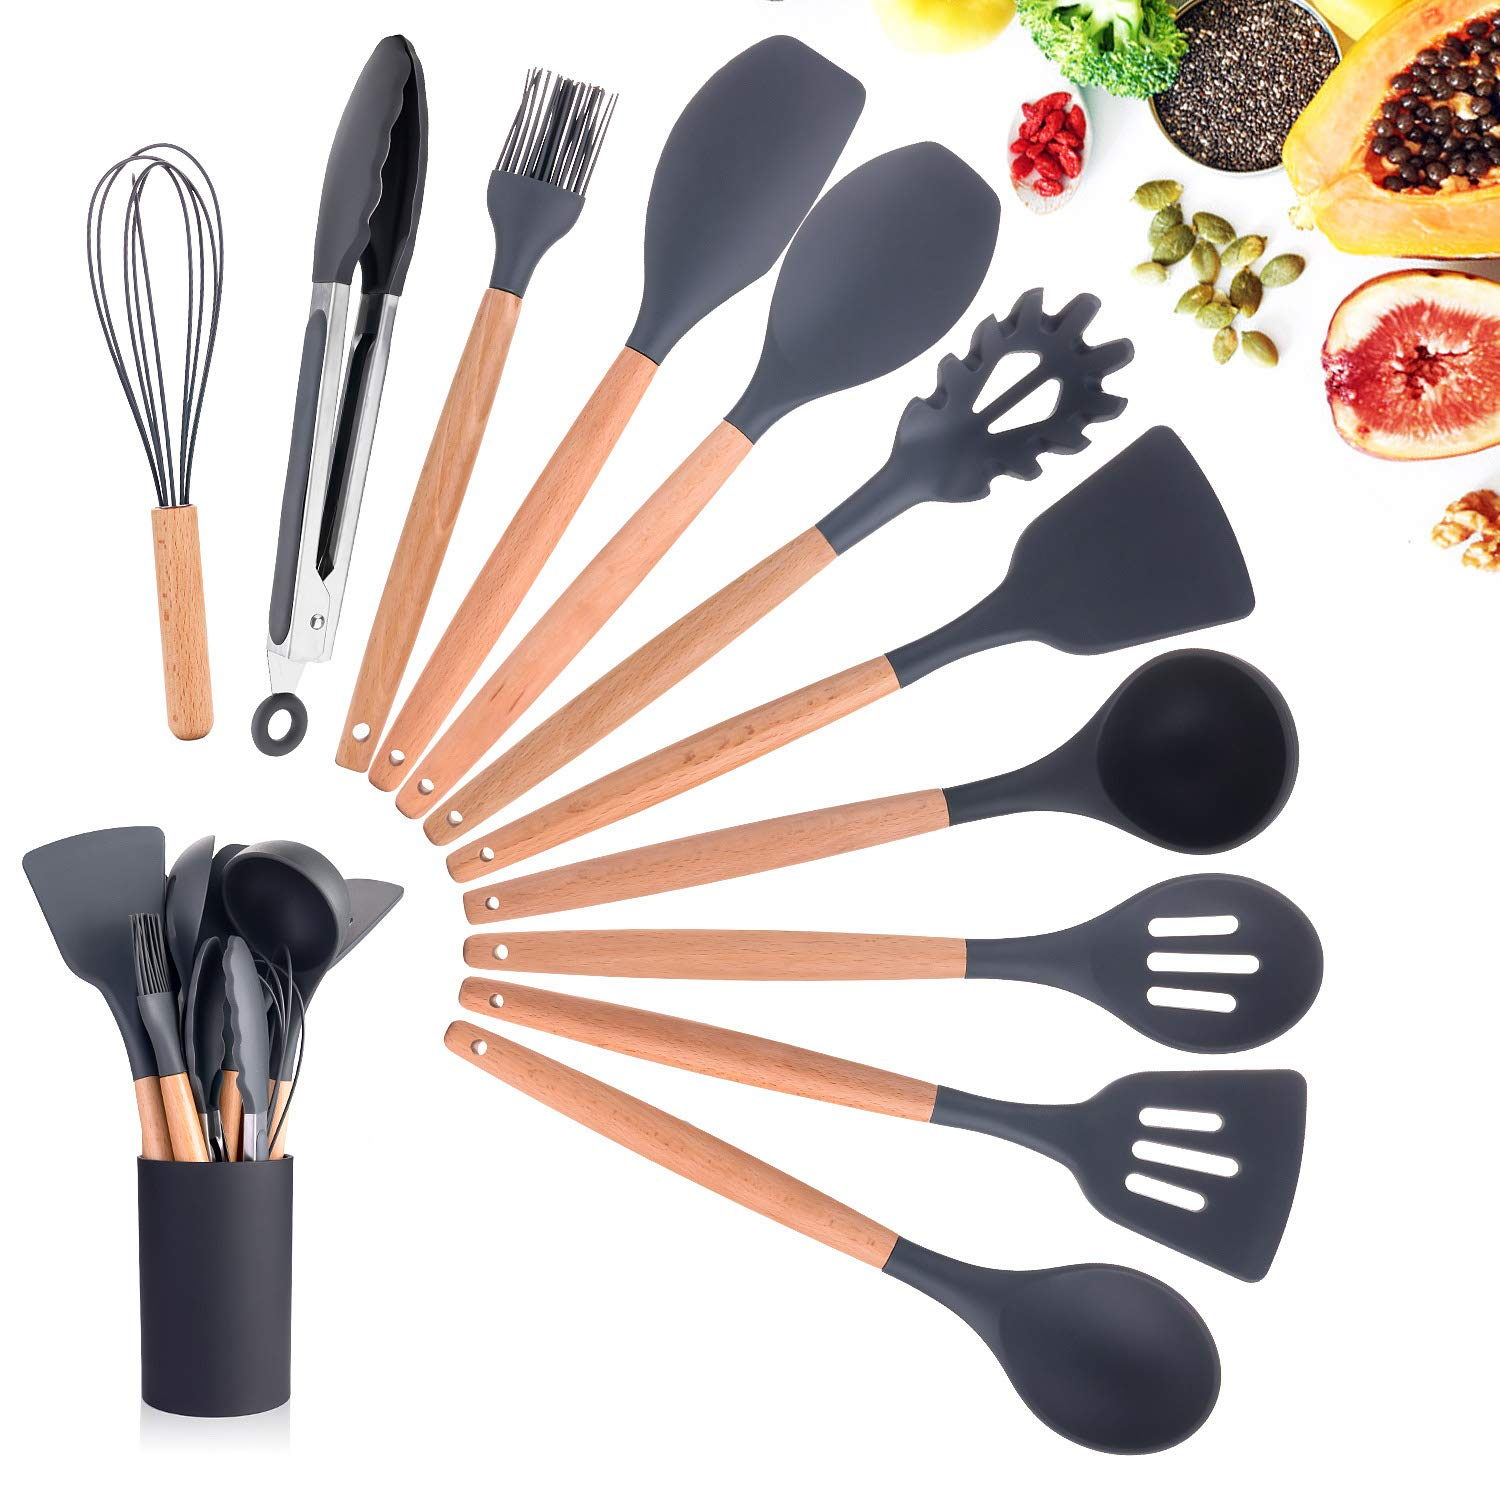 Silicone Cooking Utensils Kitchen Utensil Set, 11 Pieces Natural Wooden Handles Cooking Tool BPA Free Non Toxic Silicone Turner Tongs Spatula Spoon Kitchen Gadgets Utensil Set for Nonstick Cookware